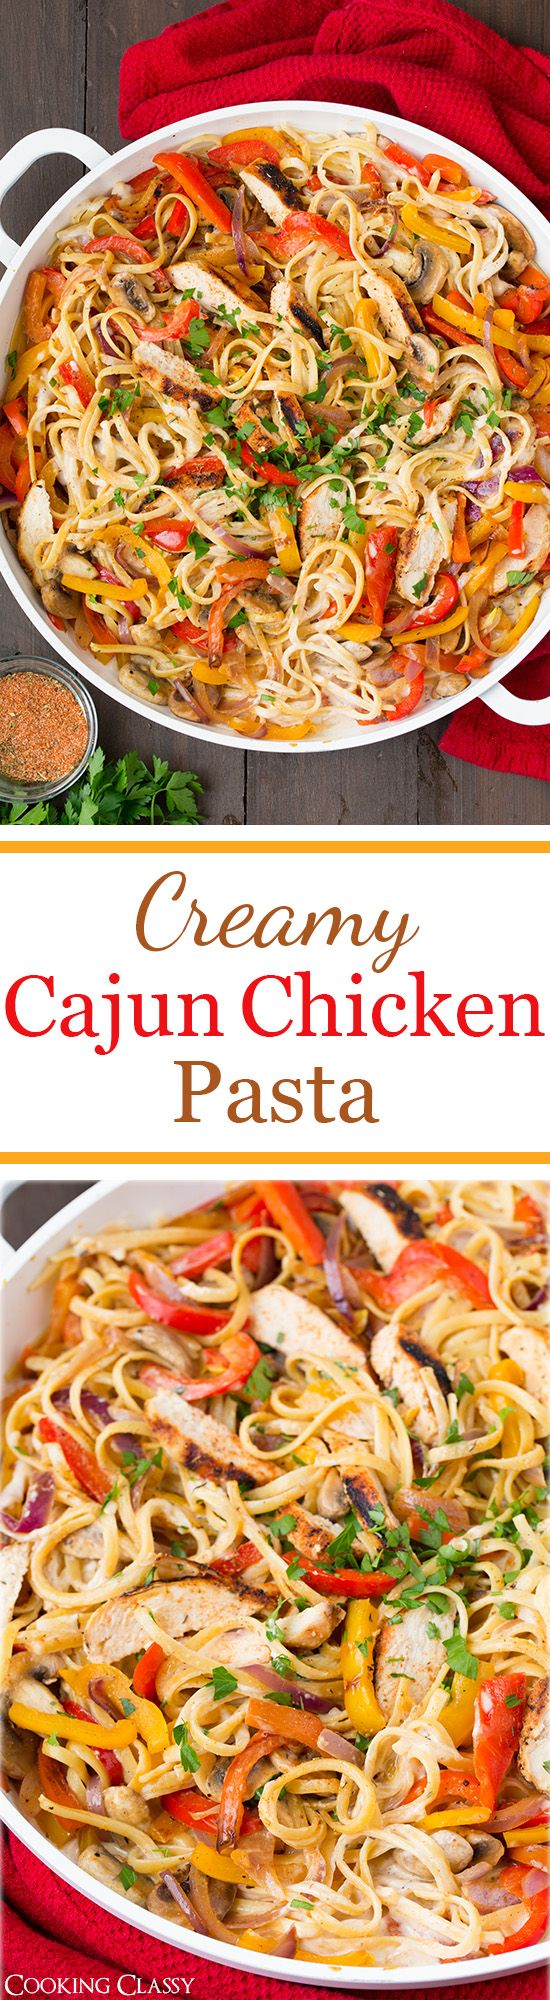 224 best Cajun Cooking images on Pinterest | Cajun recipes, Meals ...